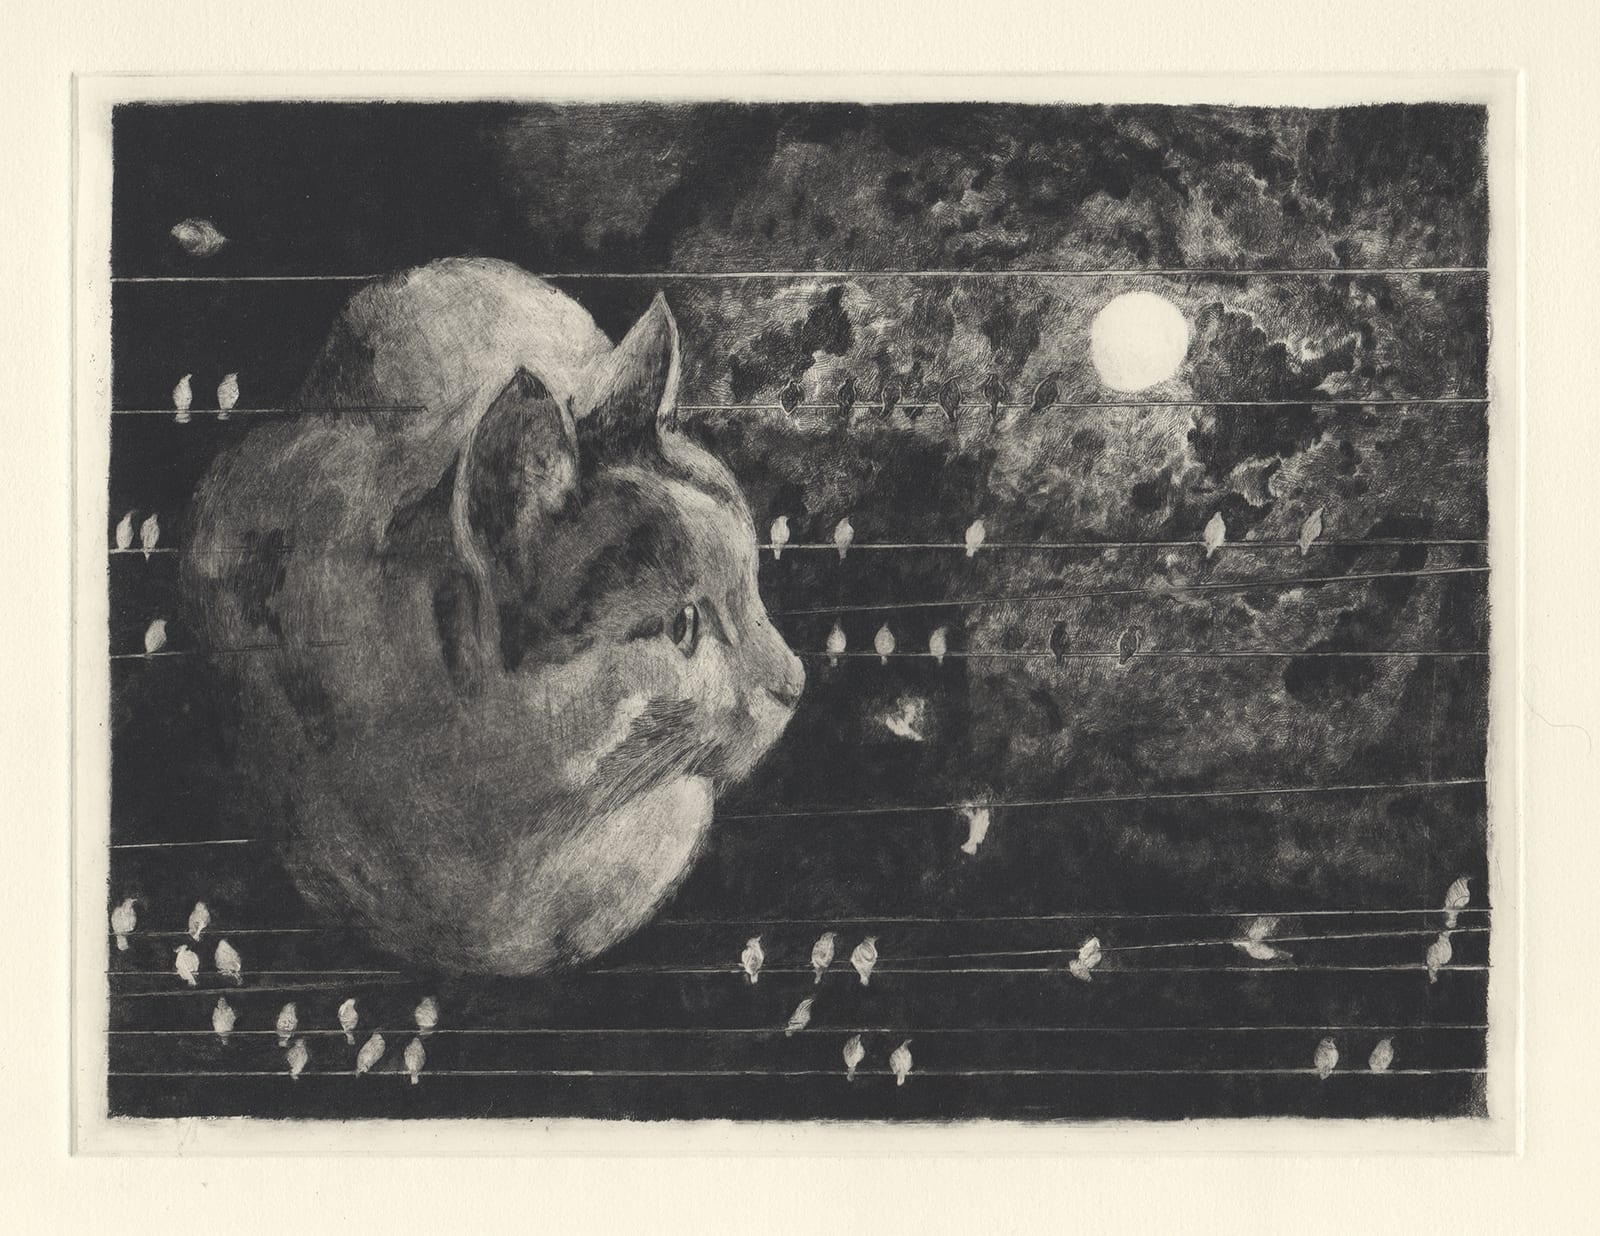 Hachi and wires (drypoint etching by Yaemi Shigyo)